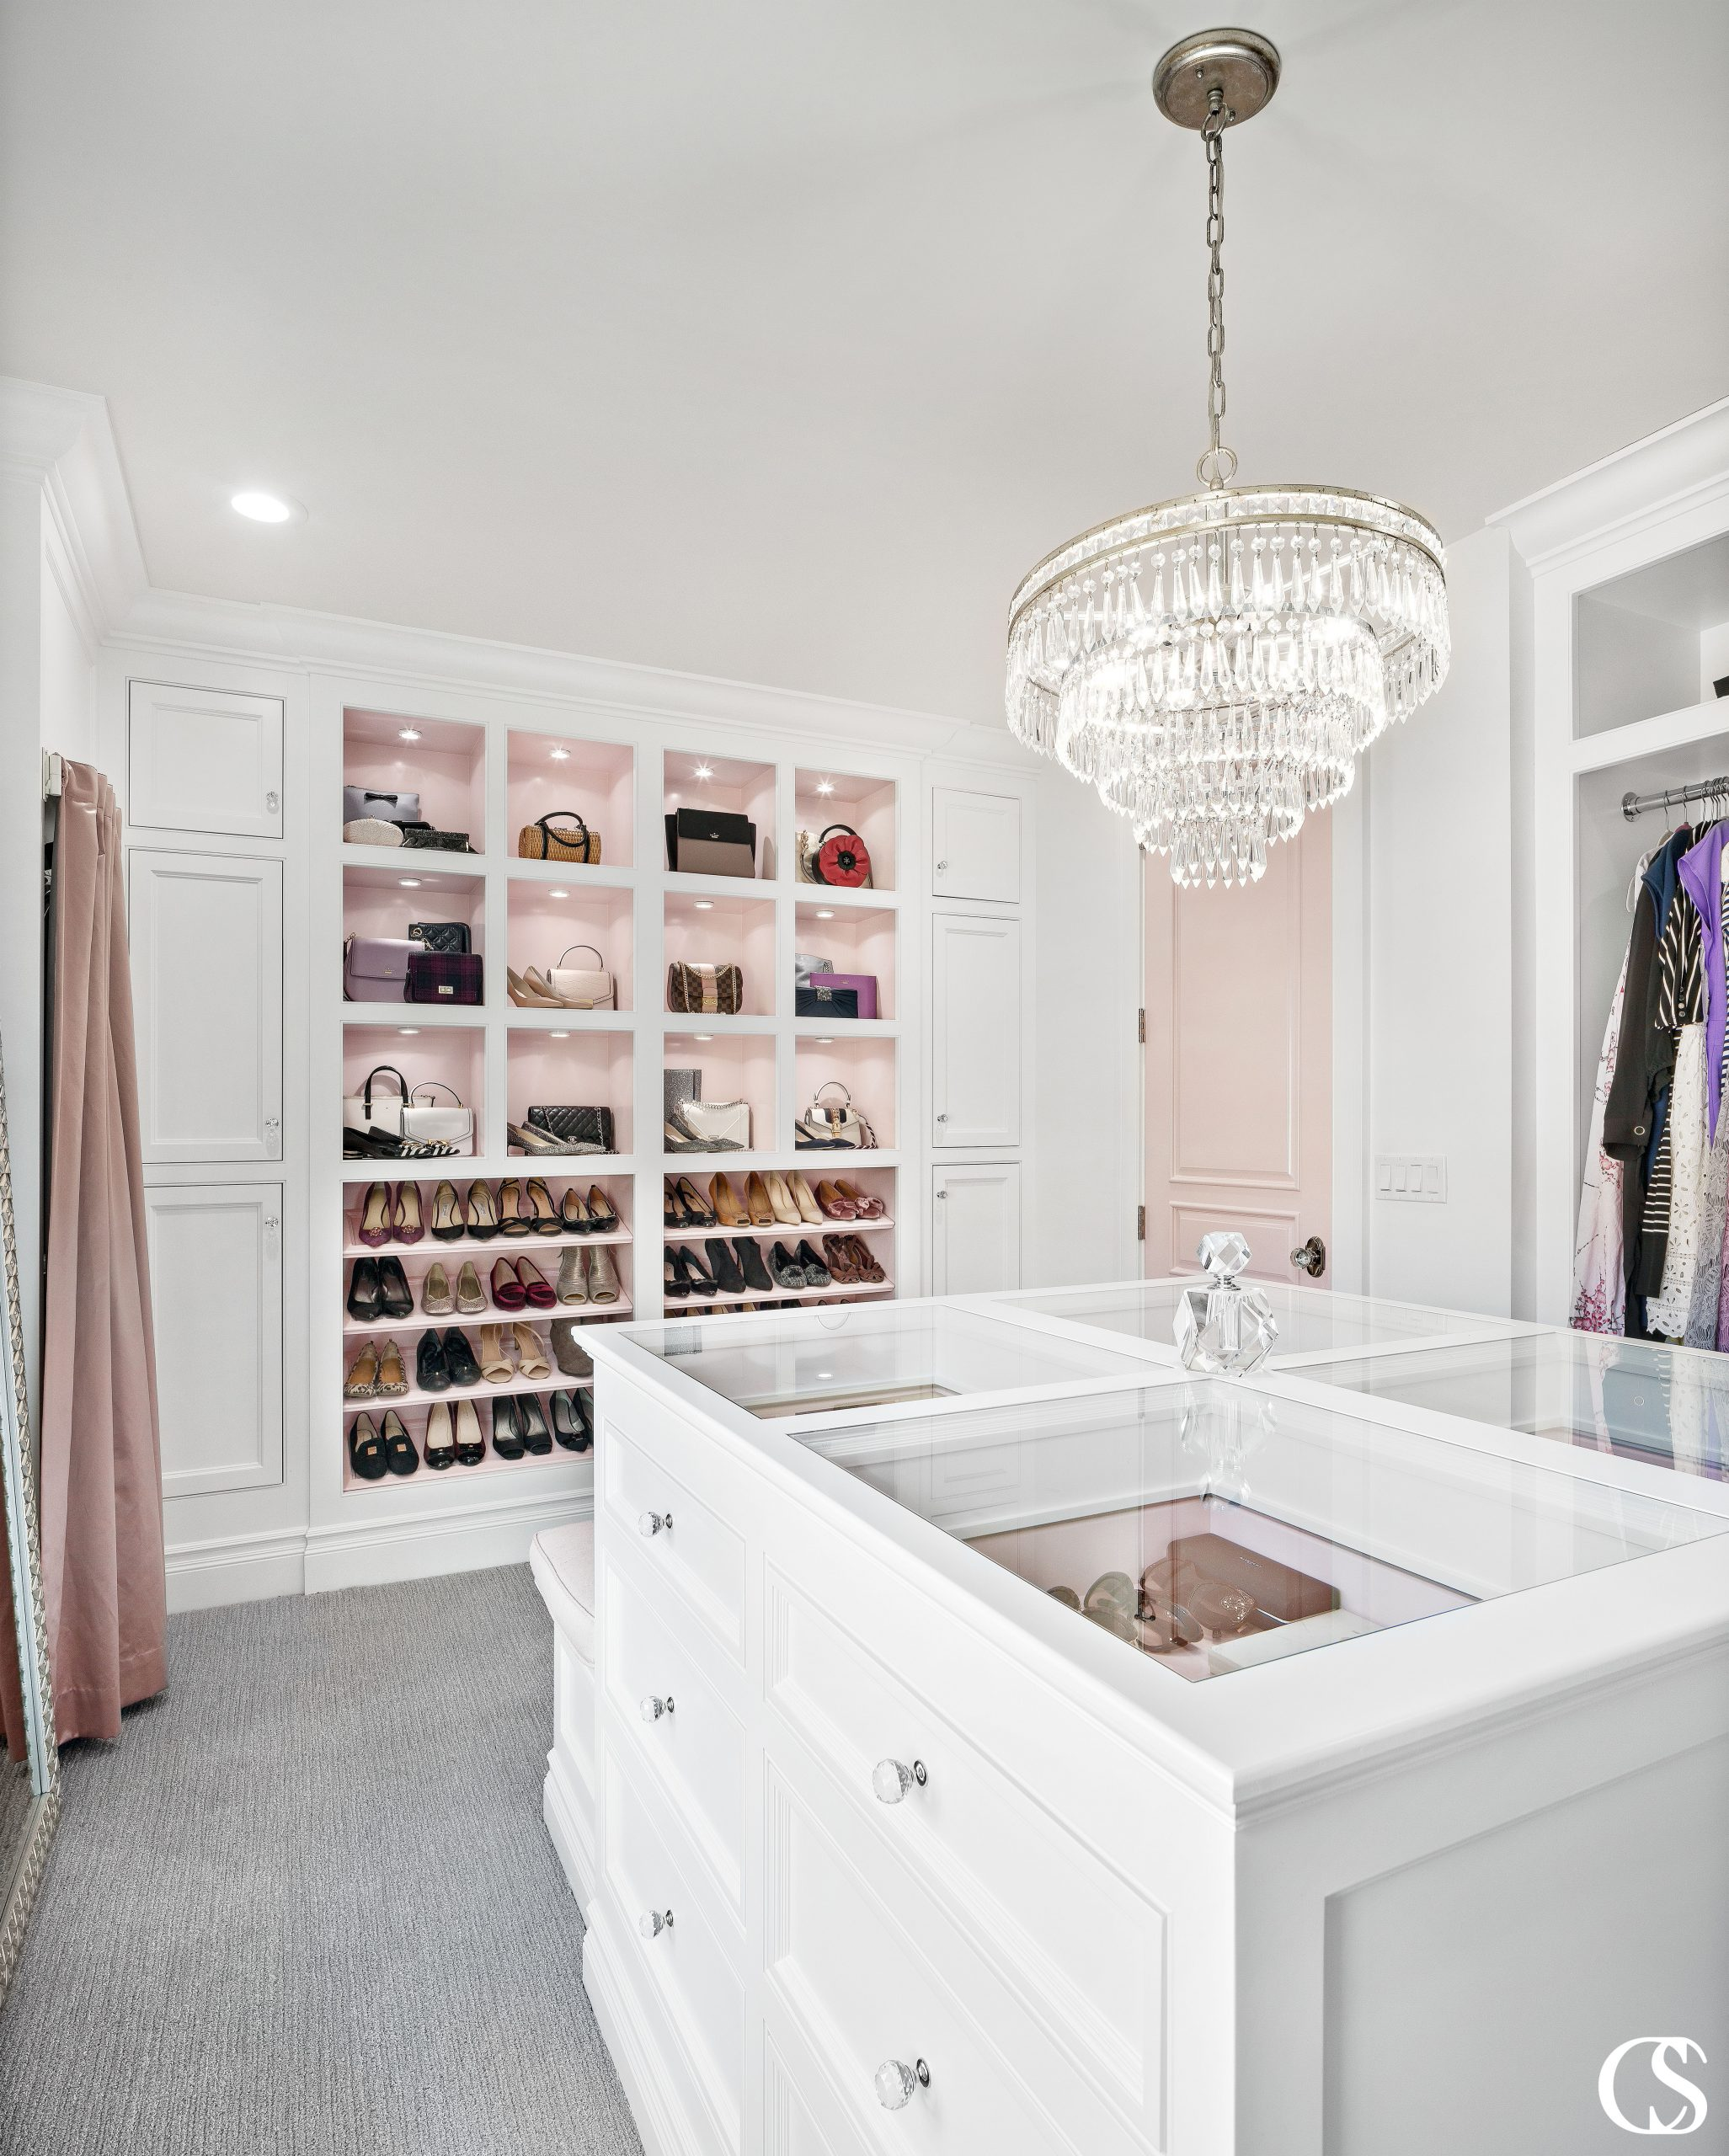 Custom built in cabinets in your closet give you the chance to display all your shoes, purses, and other accessories in a perfectly organized and beautiful way.